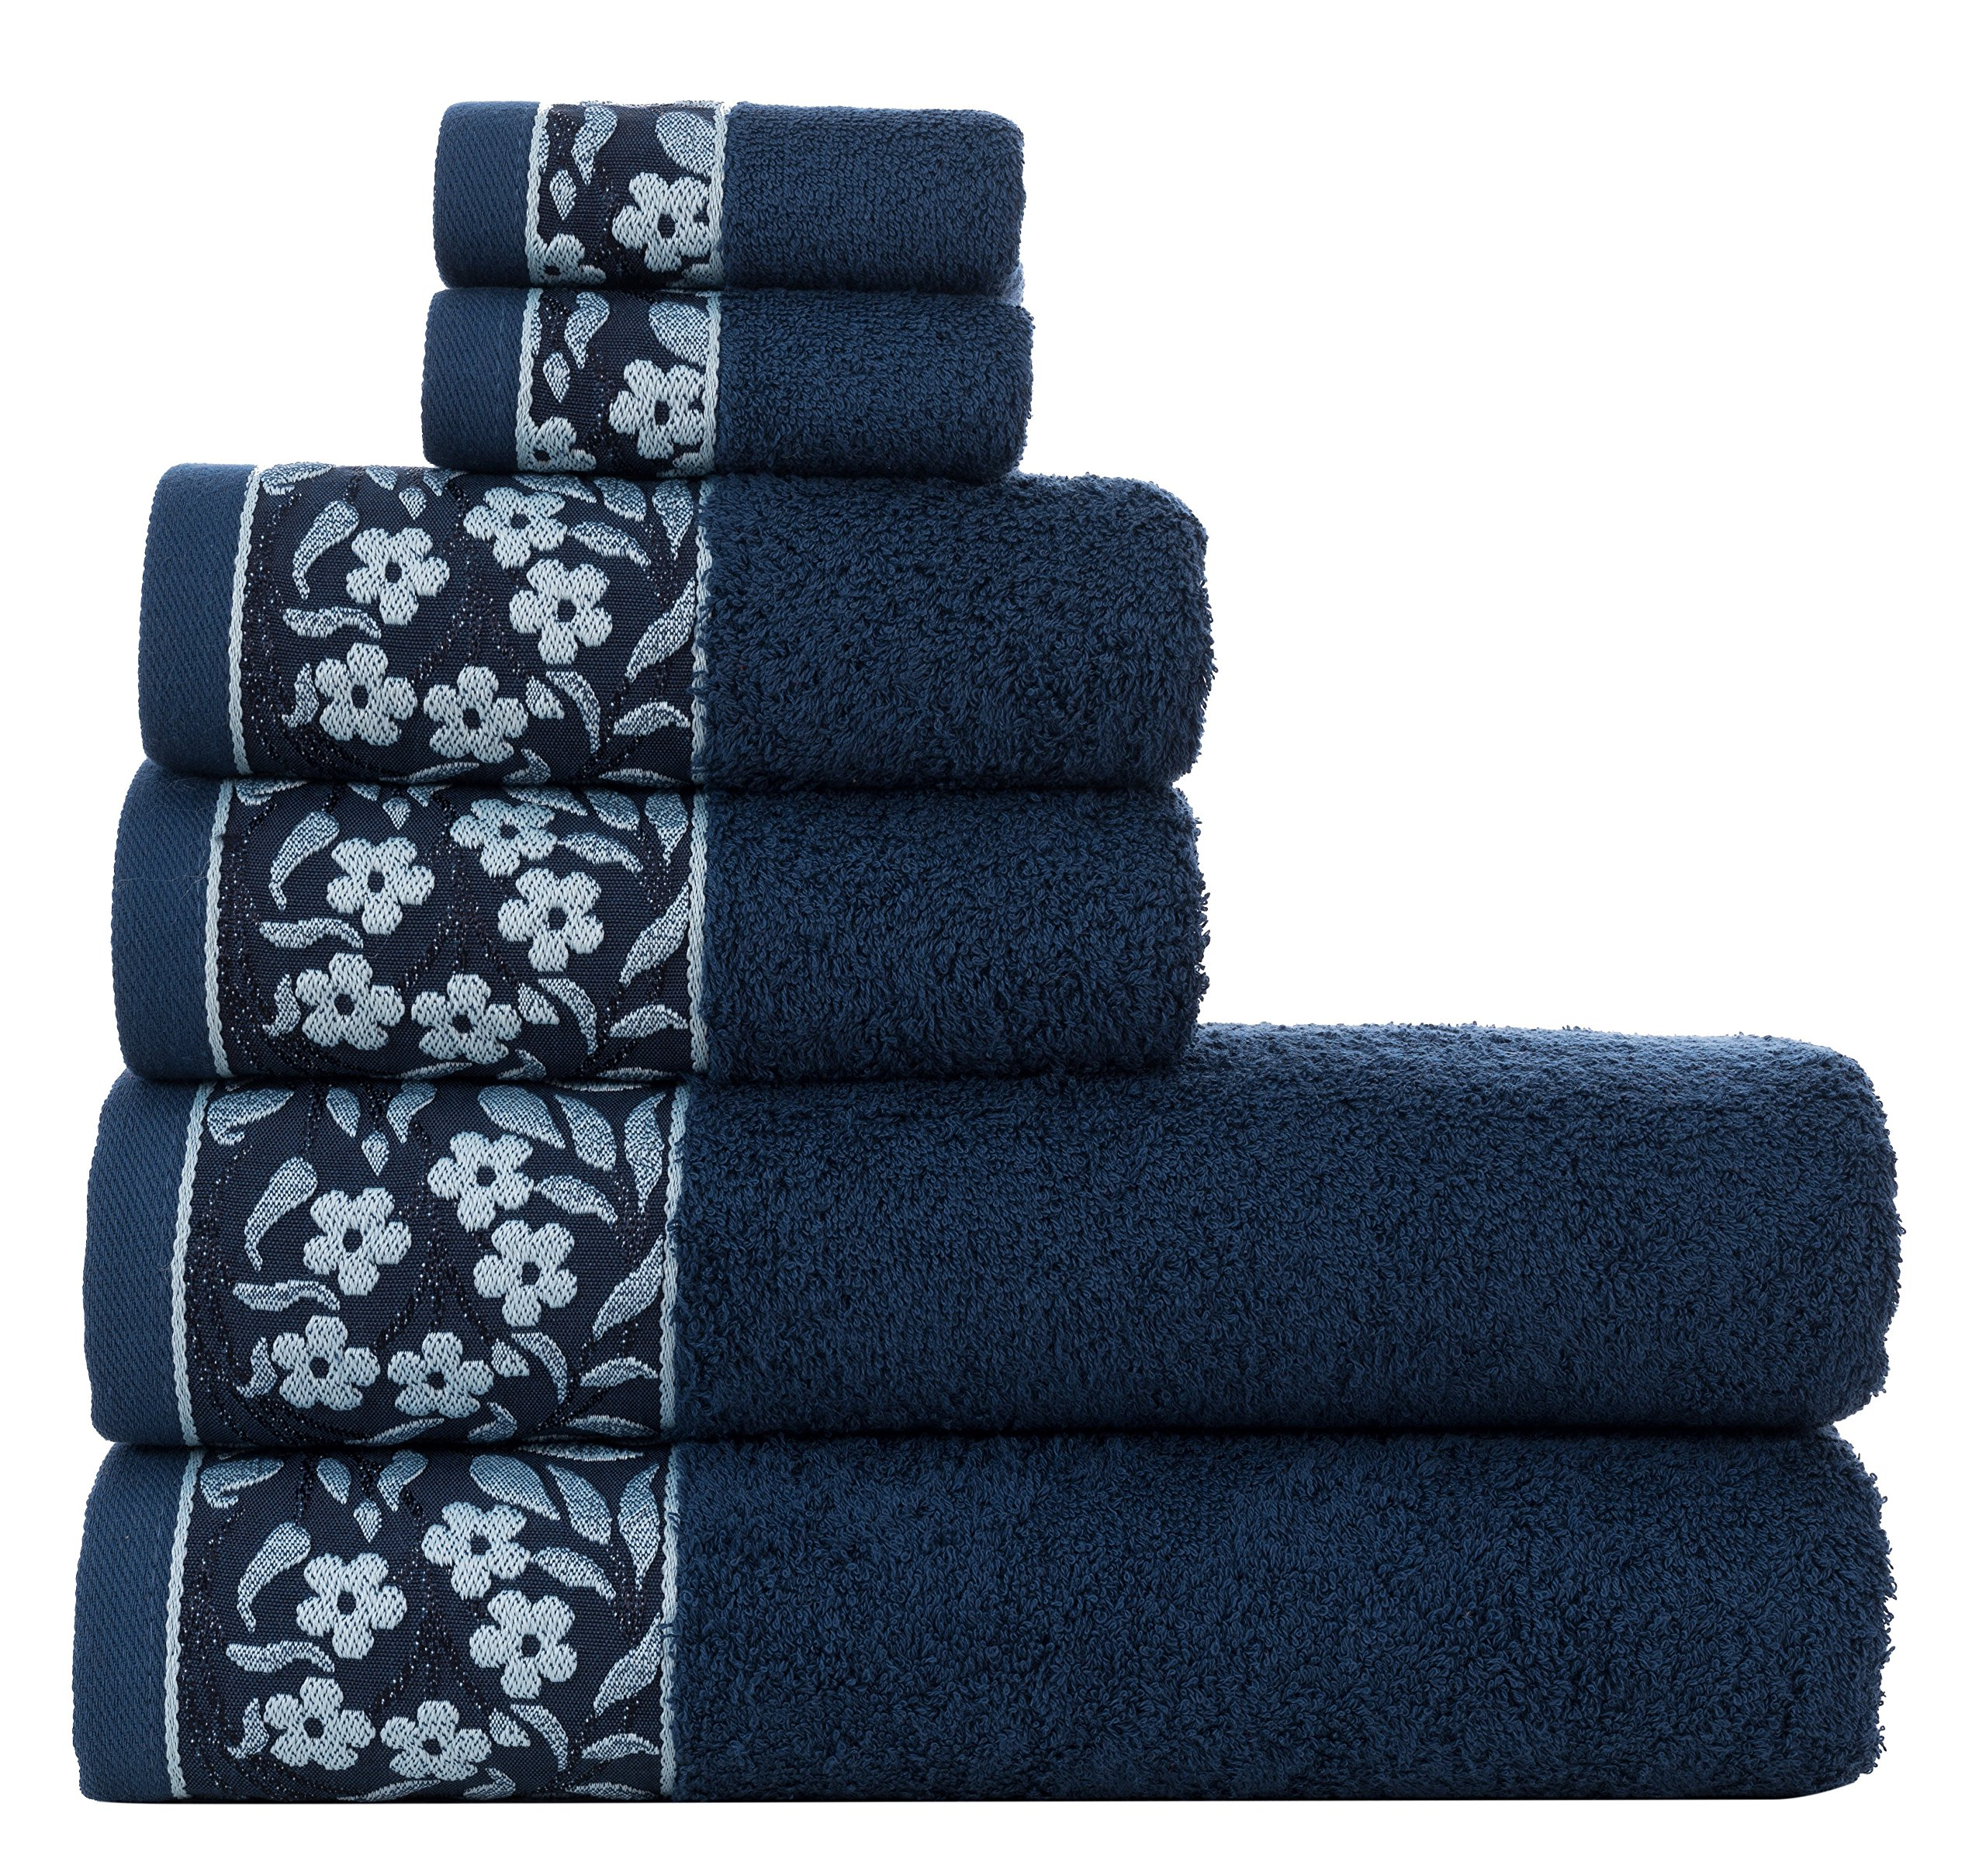 HYGGE Premium Turkish Cotton Towel Set with Floral Jacquard; 2 Bath Towels (27'' x 56''); 2 Hand Towels (19'' x 32''); 2 Washcloths (12'' x 12'')